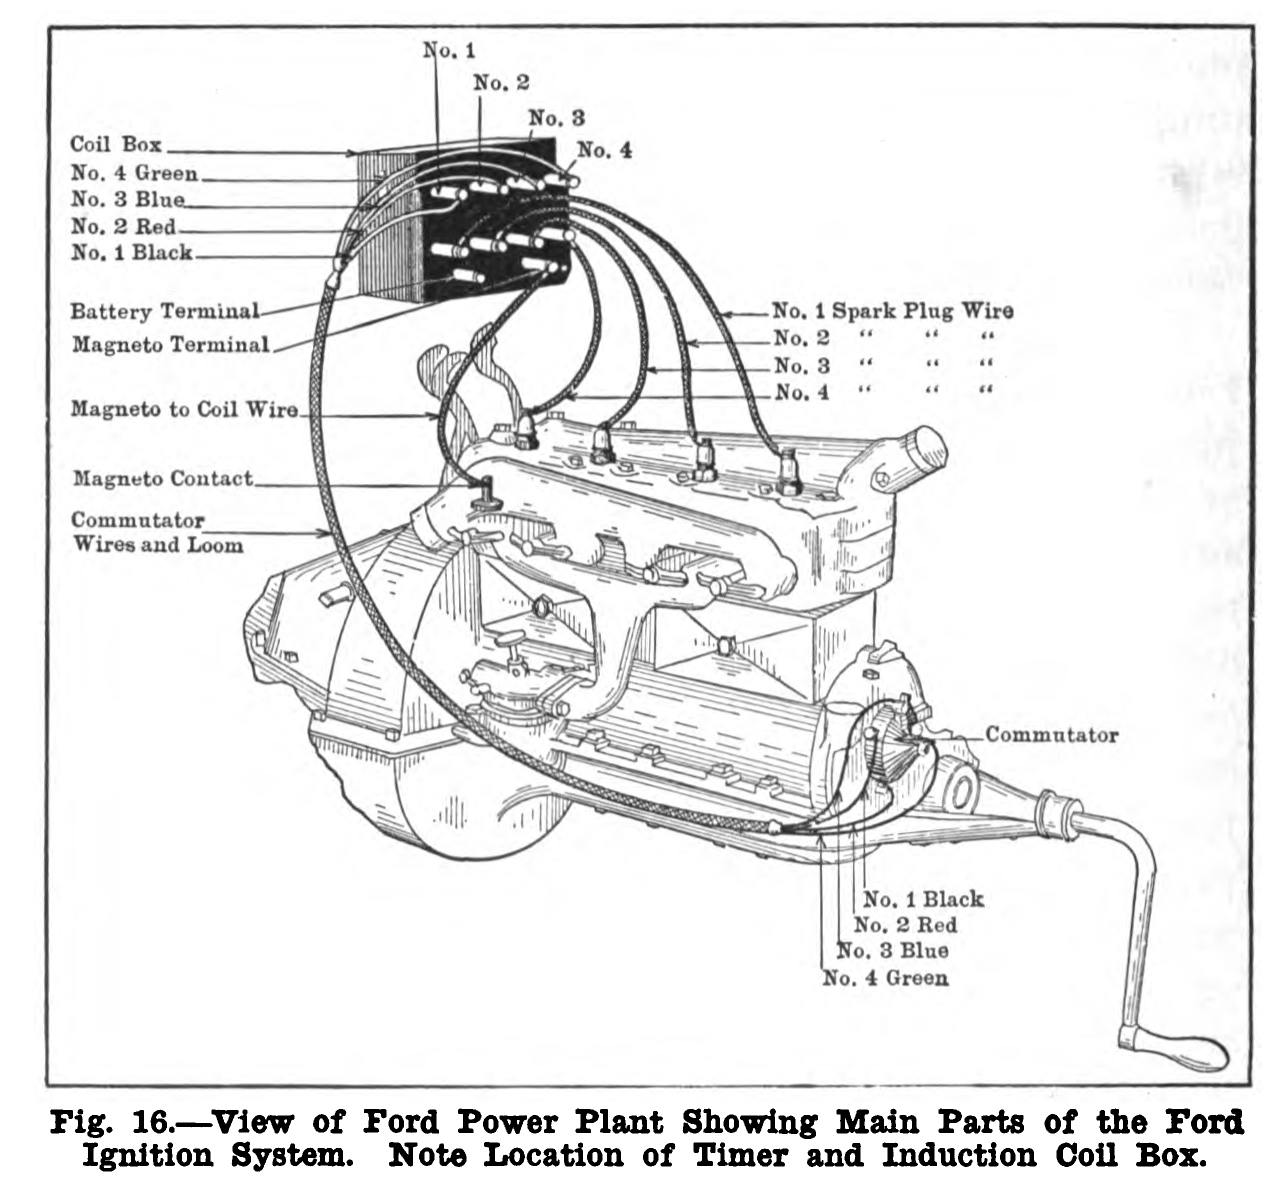 small resolution of 1917 model t ford car figure 16